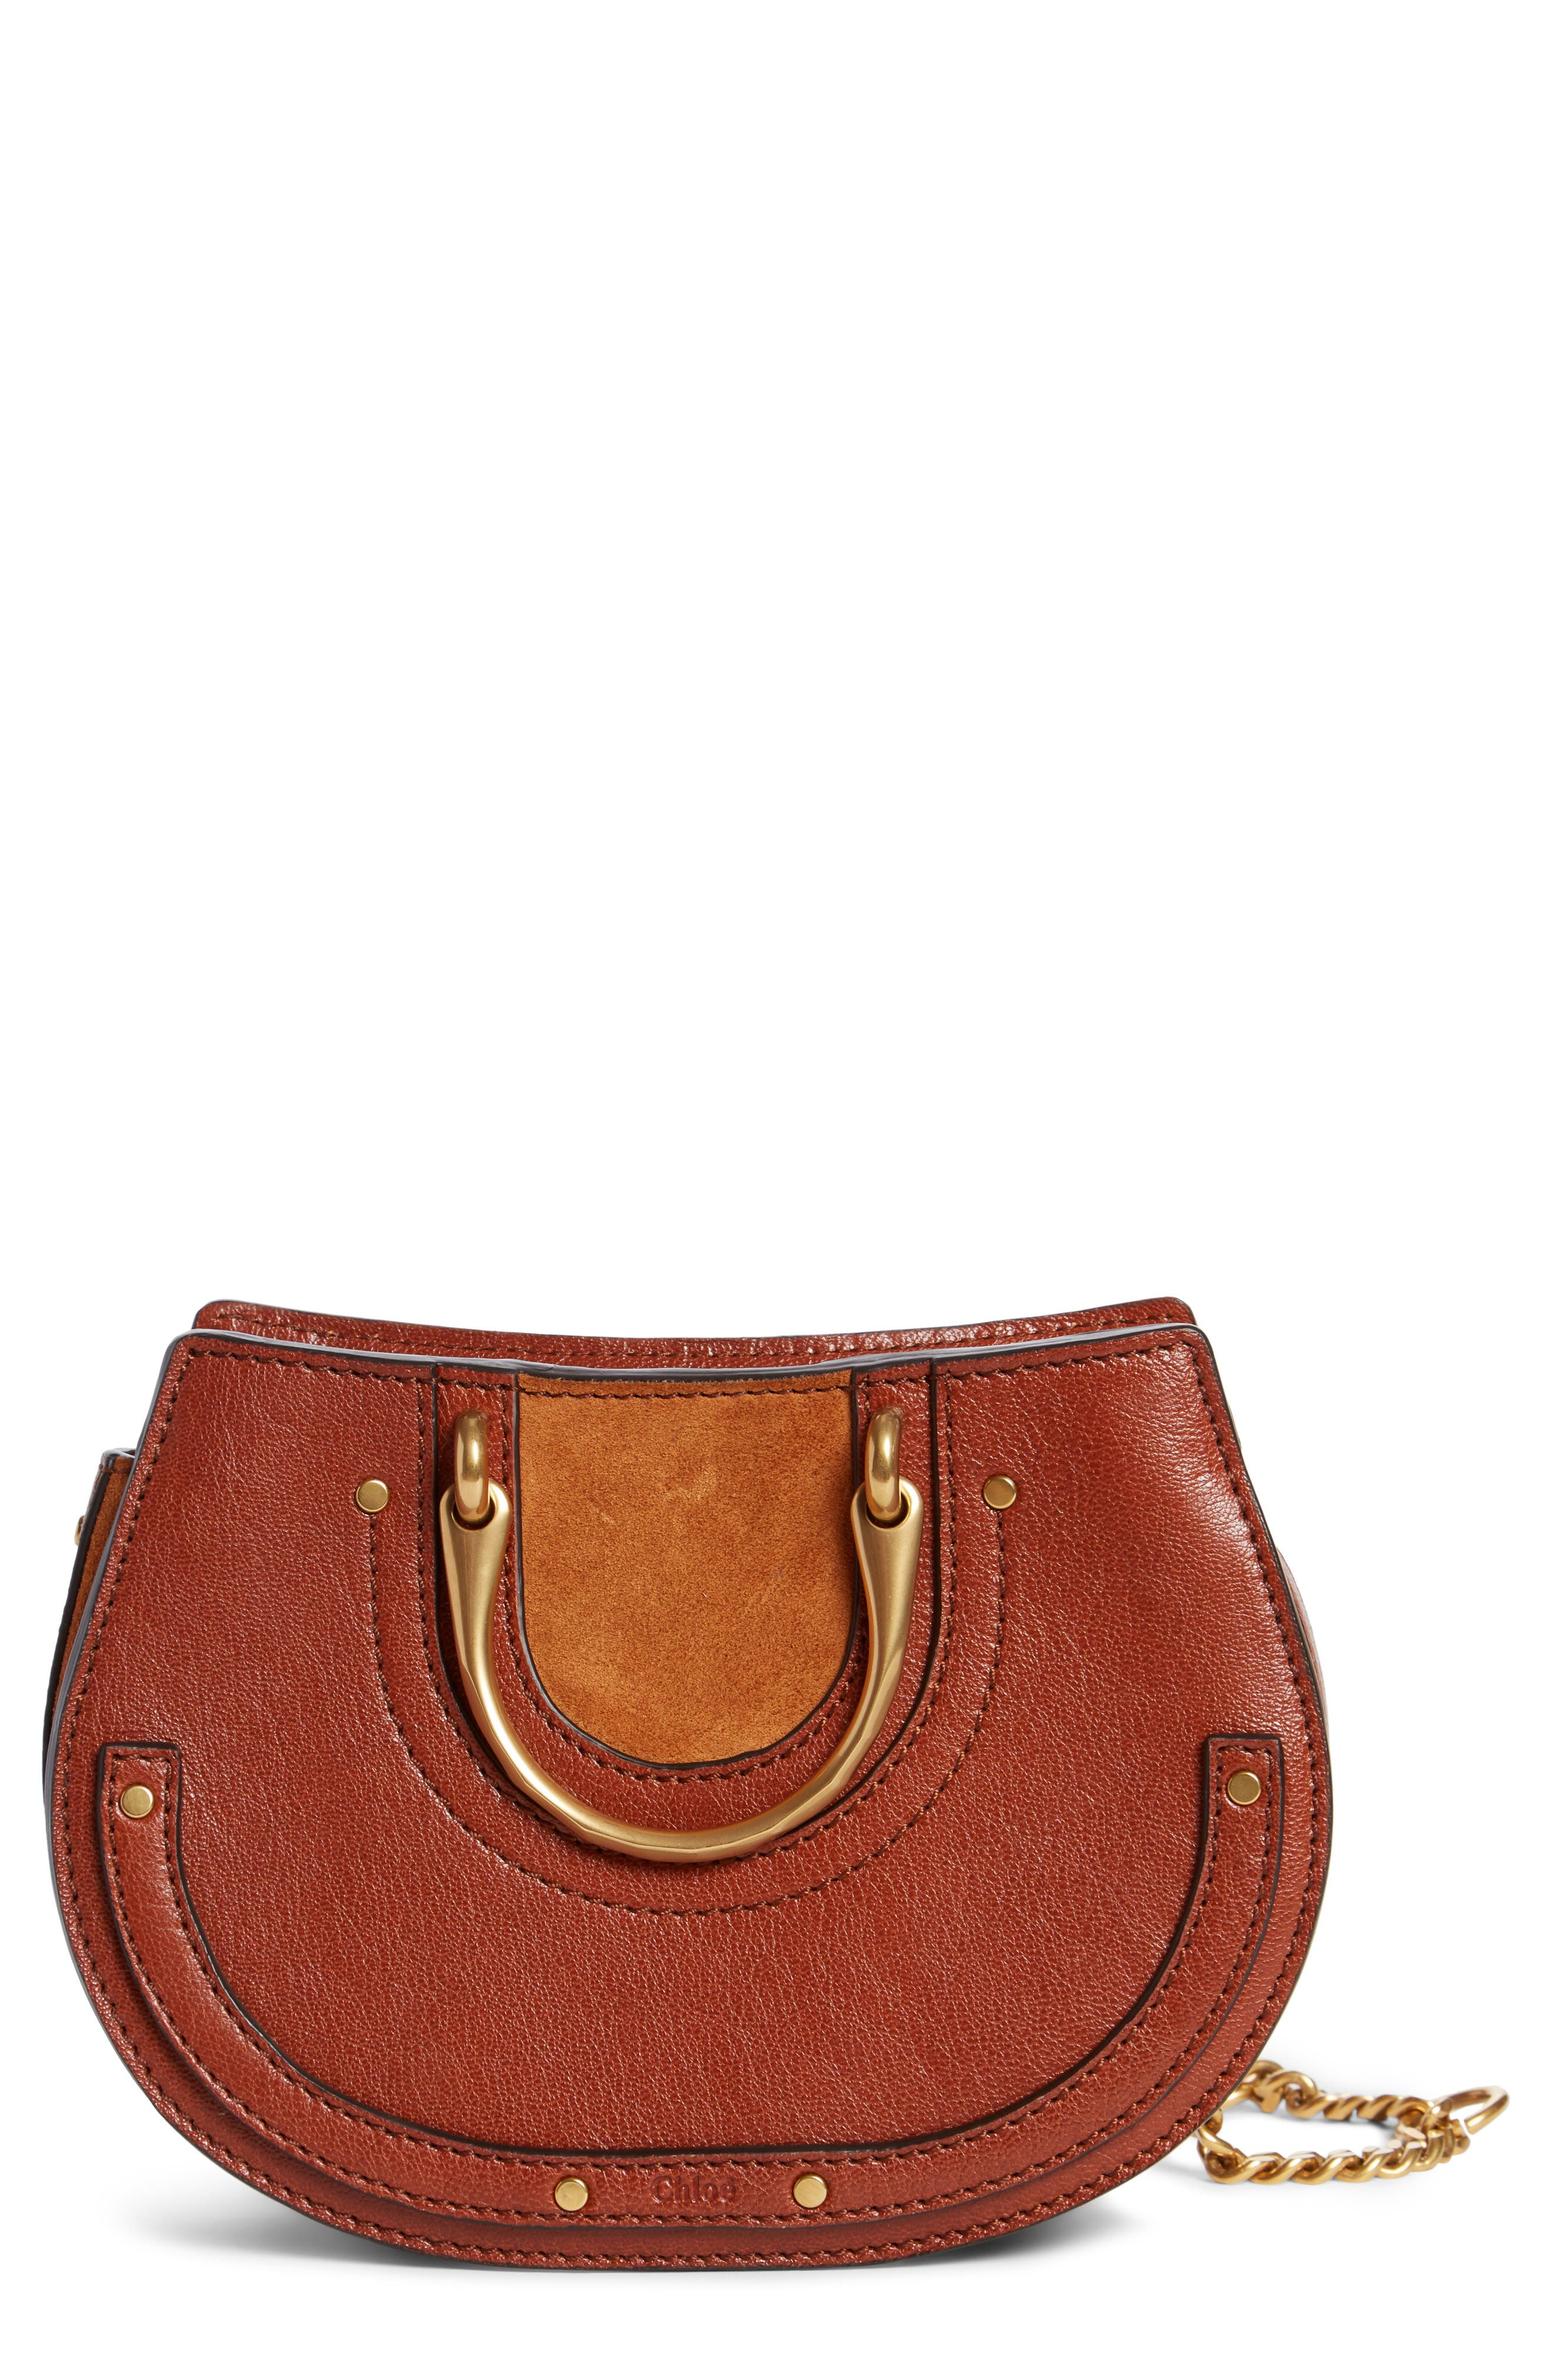 Chloé Micro Pixie Leather Top Handle Satchel